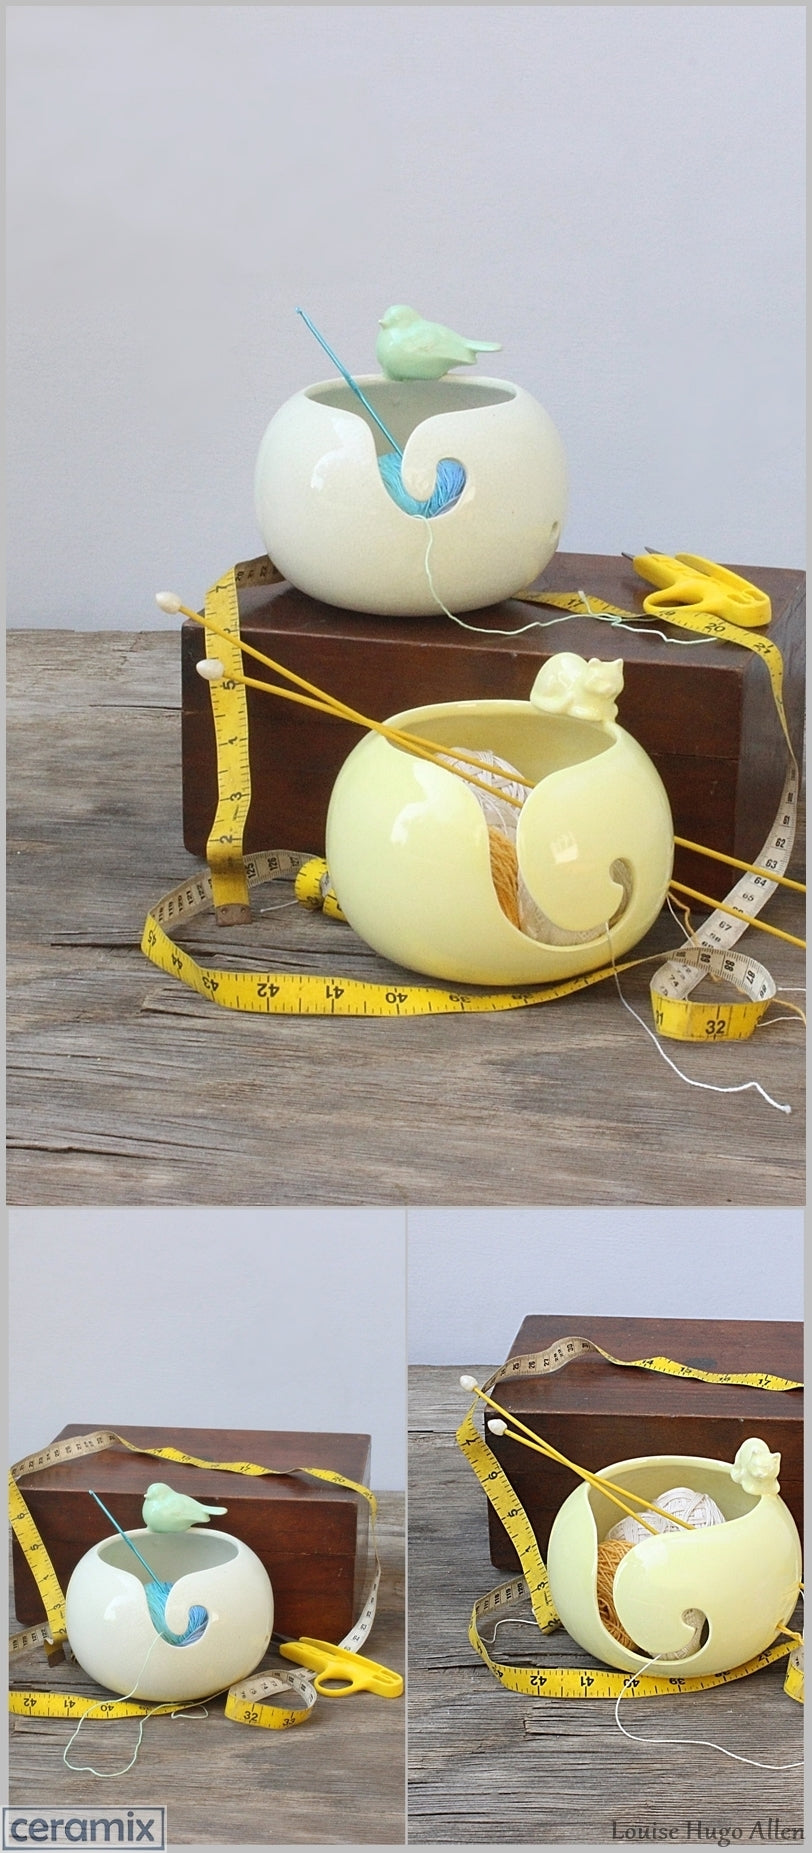 Margaret Melville Hugo handmade the Peaceful Song Green Bird and Butterball Yellow Cat Yarn Bowls at Ceramix